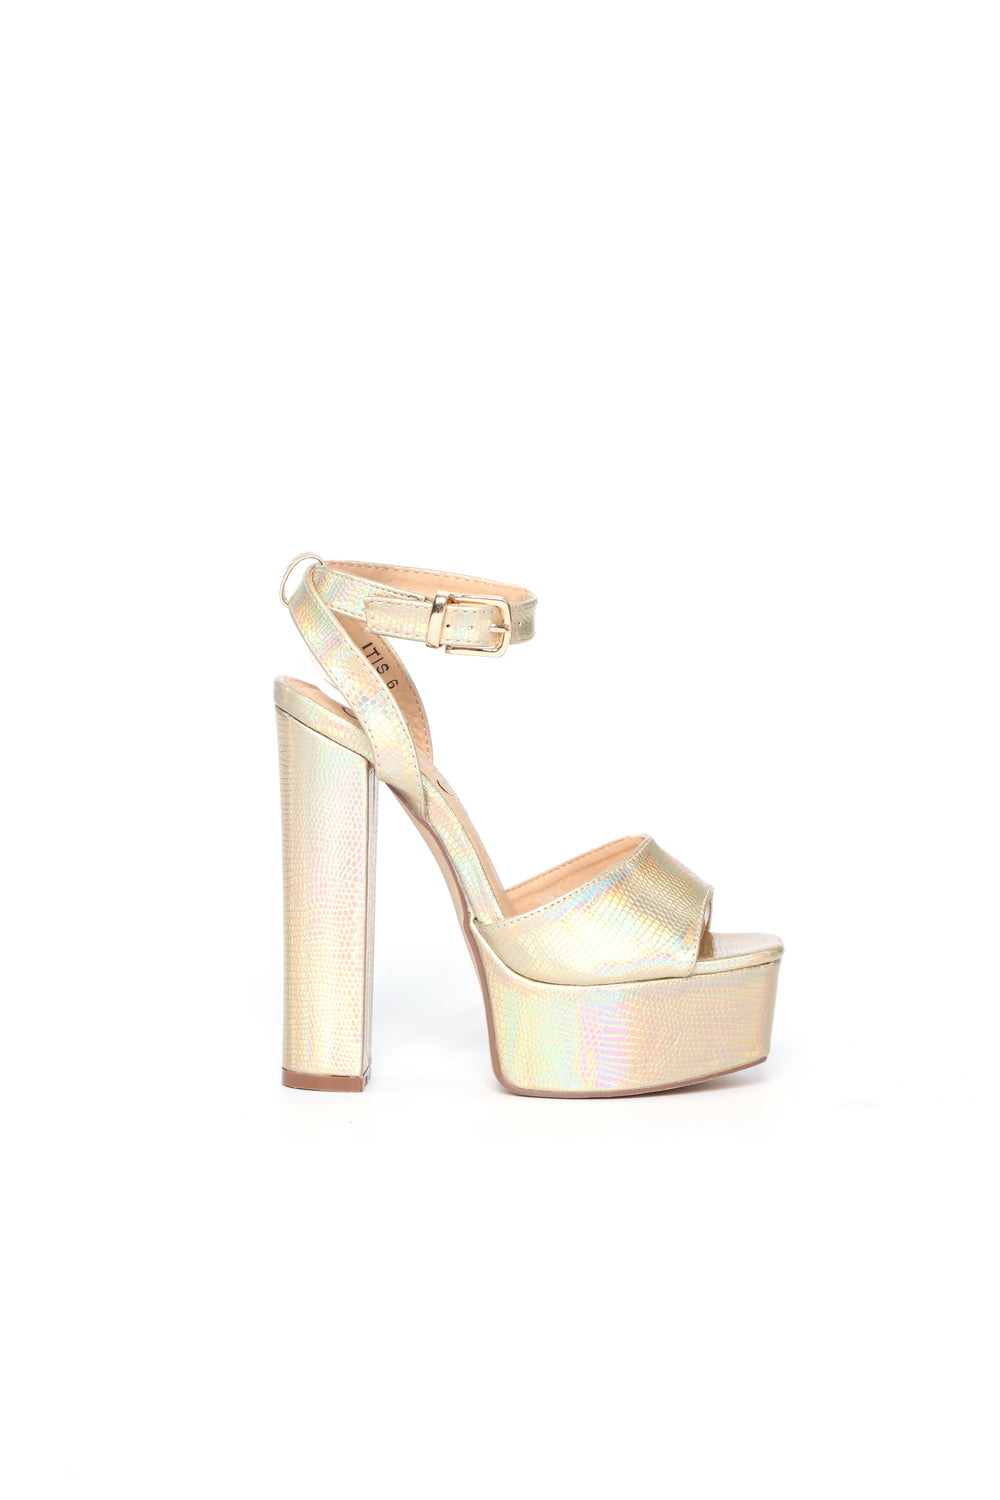 I Know I Can Heel - Gold Snake Metallic